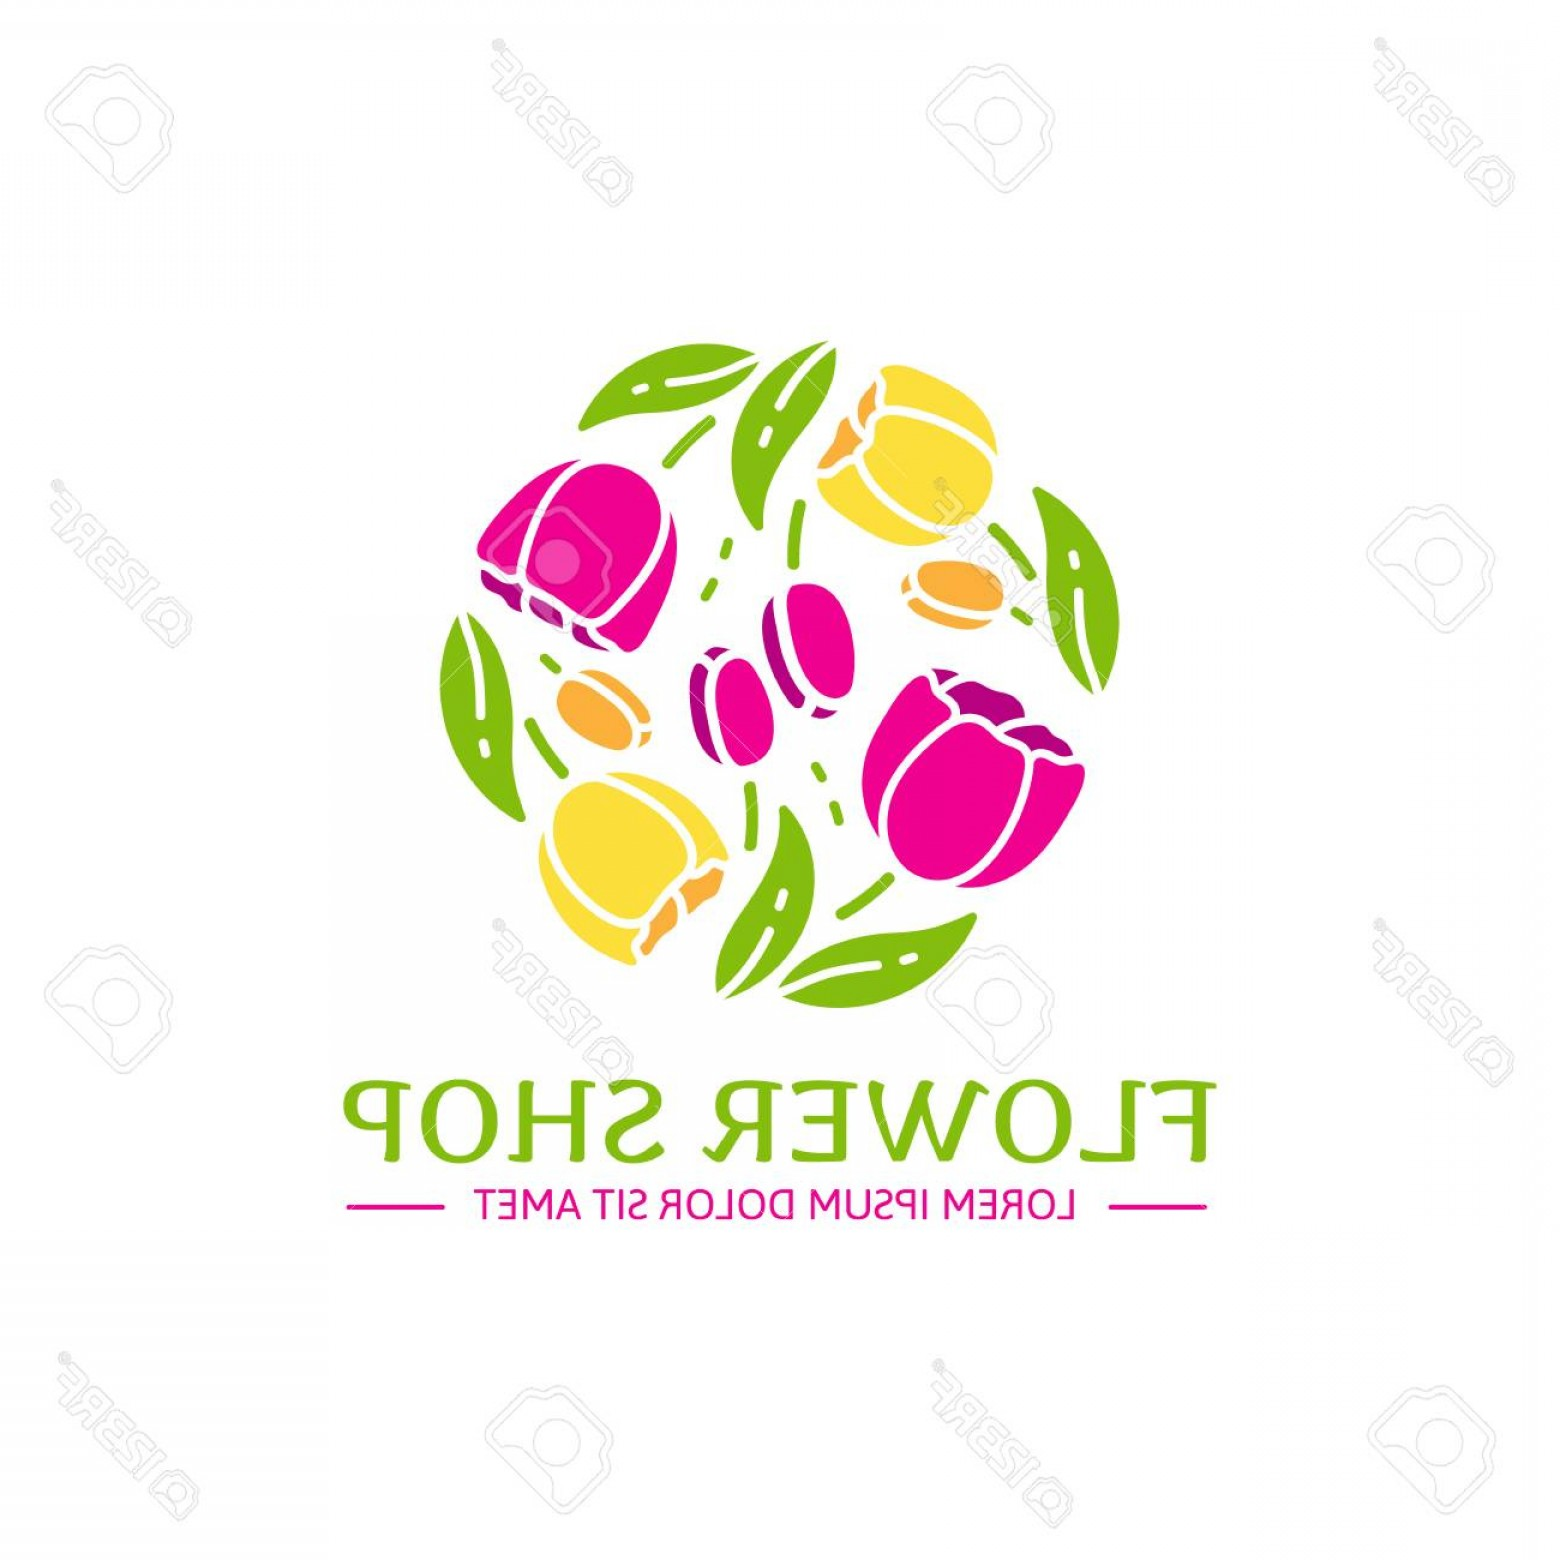 Modern Flower Logo Vector: Photostock Vector Logo For Flower Shop Arrangement Of Pink And Yellow Tulips In A Modern Style